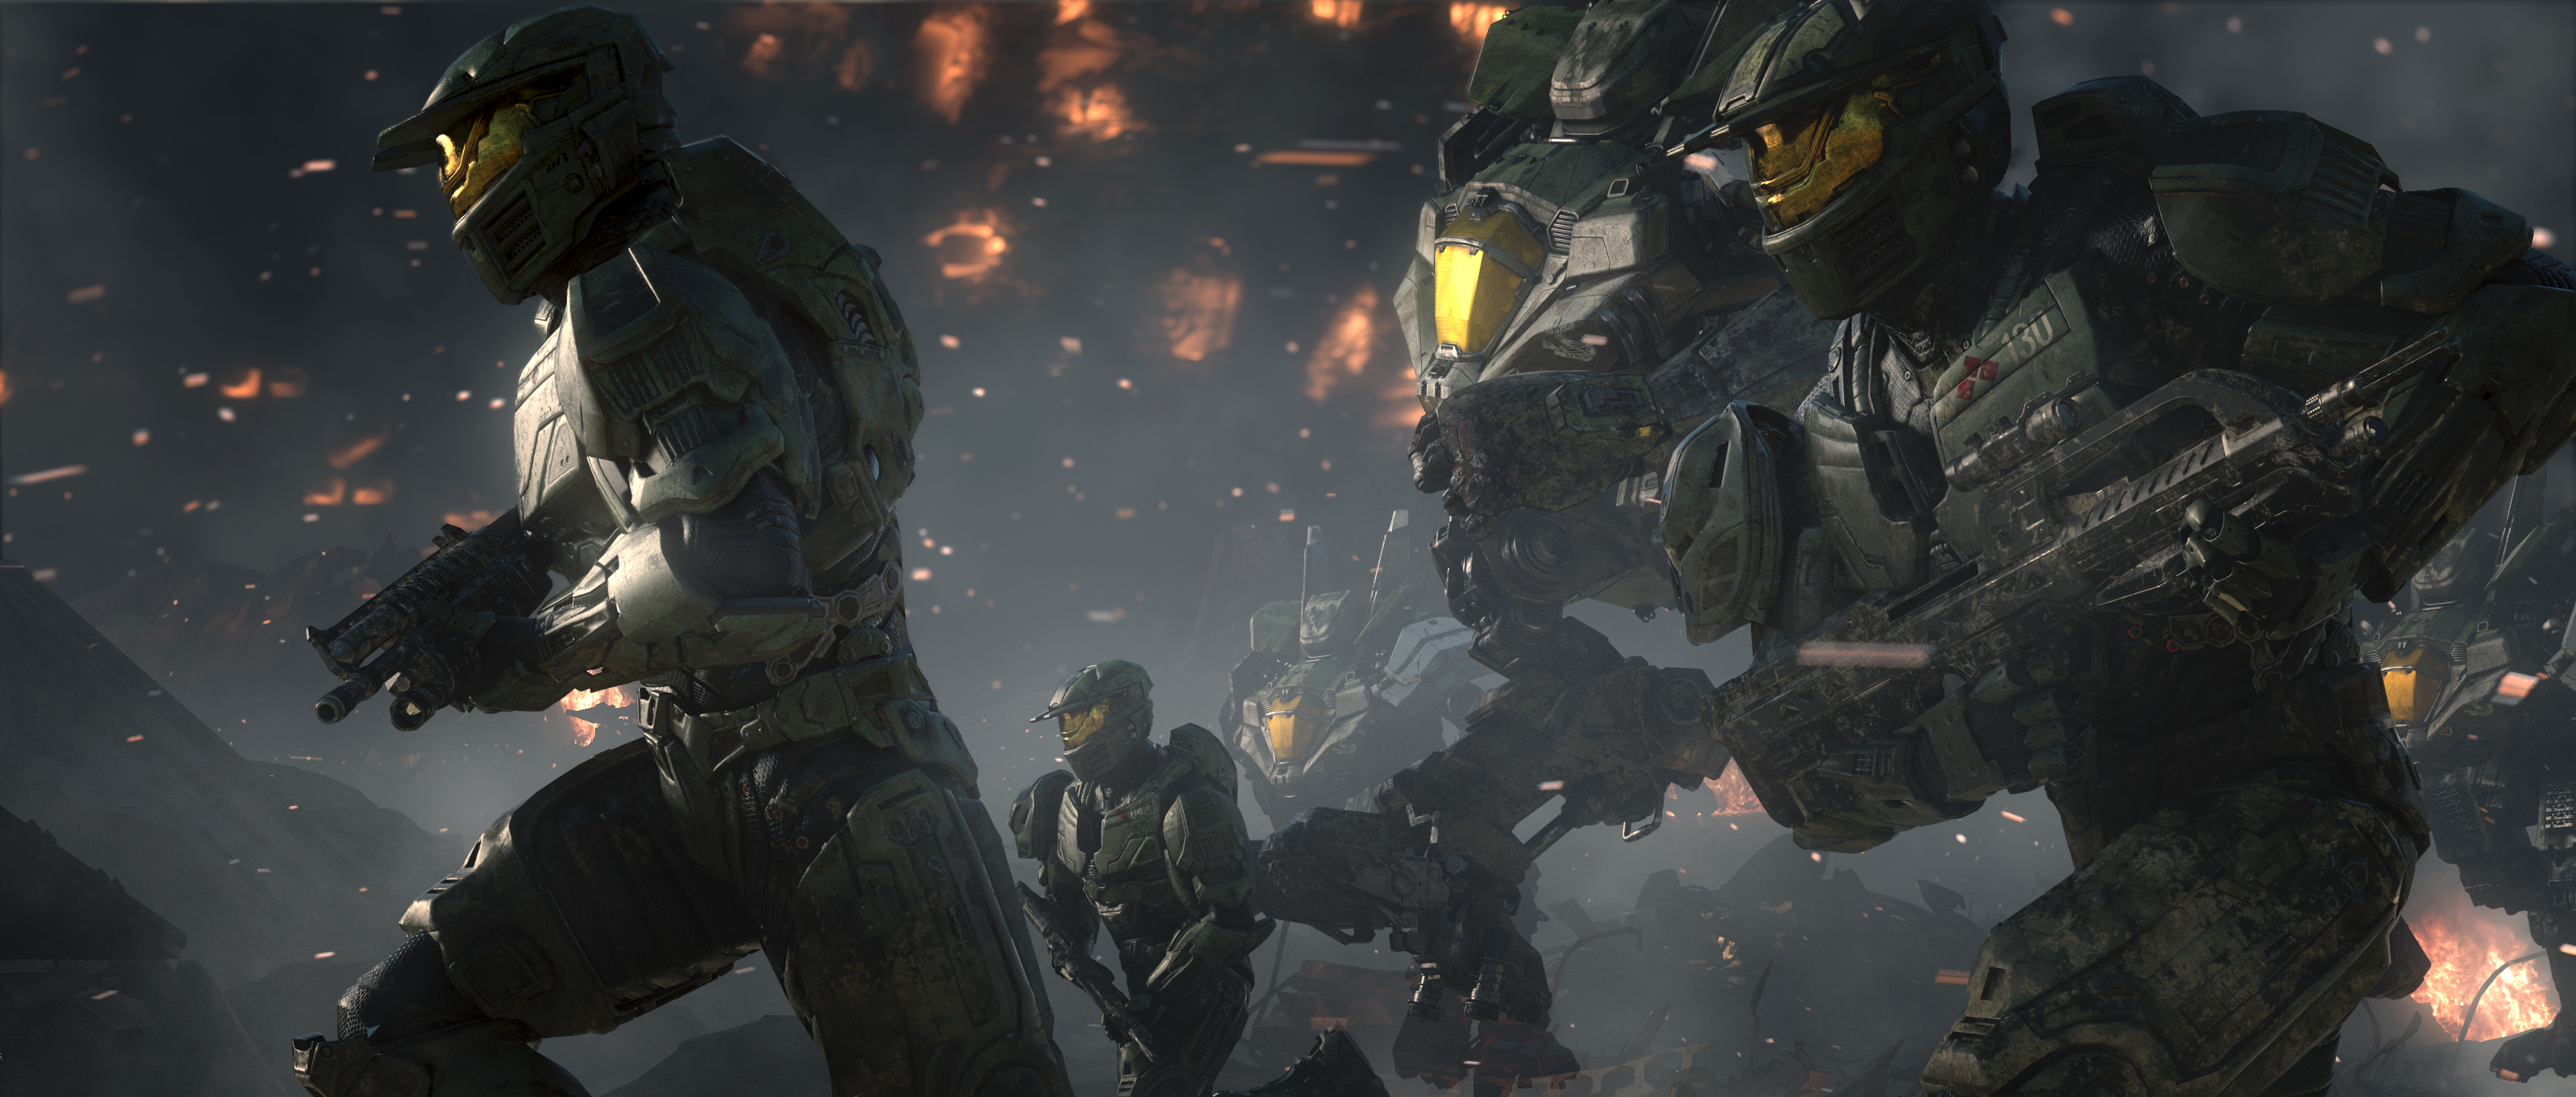 Halo-Wars-2.png